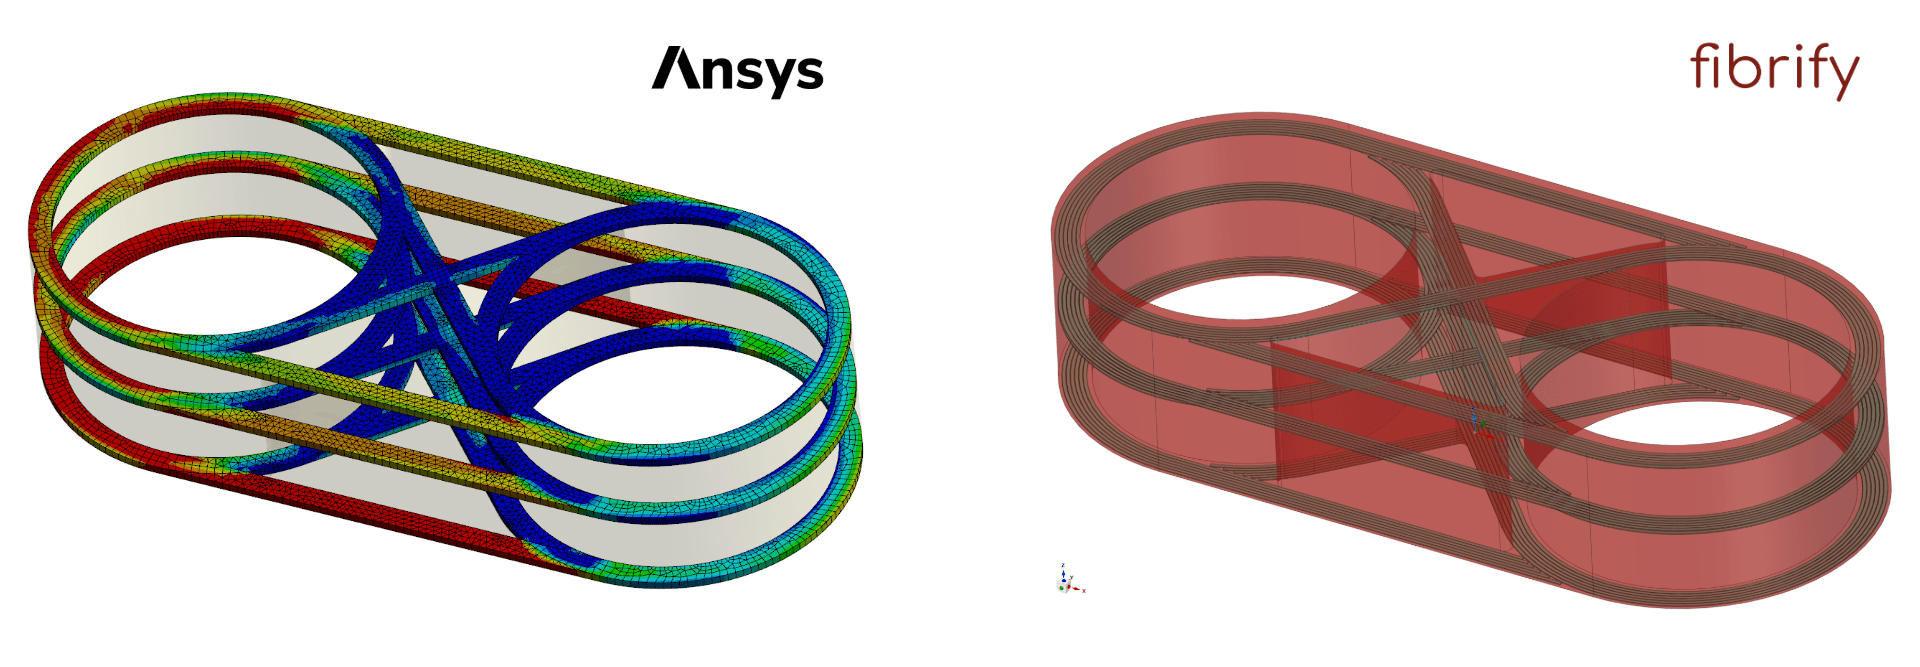 Image 1. 9T Labs optimizes the design of the automotive bracket based on the simulation in ANSYS ACP. The most lightweight part can be reached by optimal fiber layup.